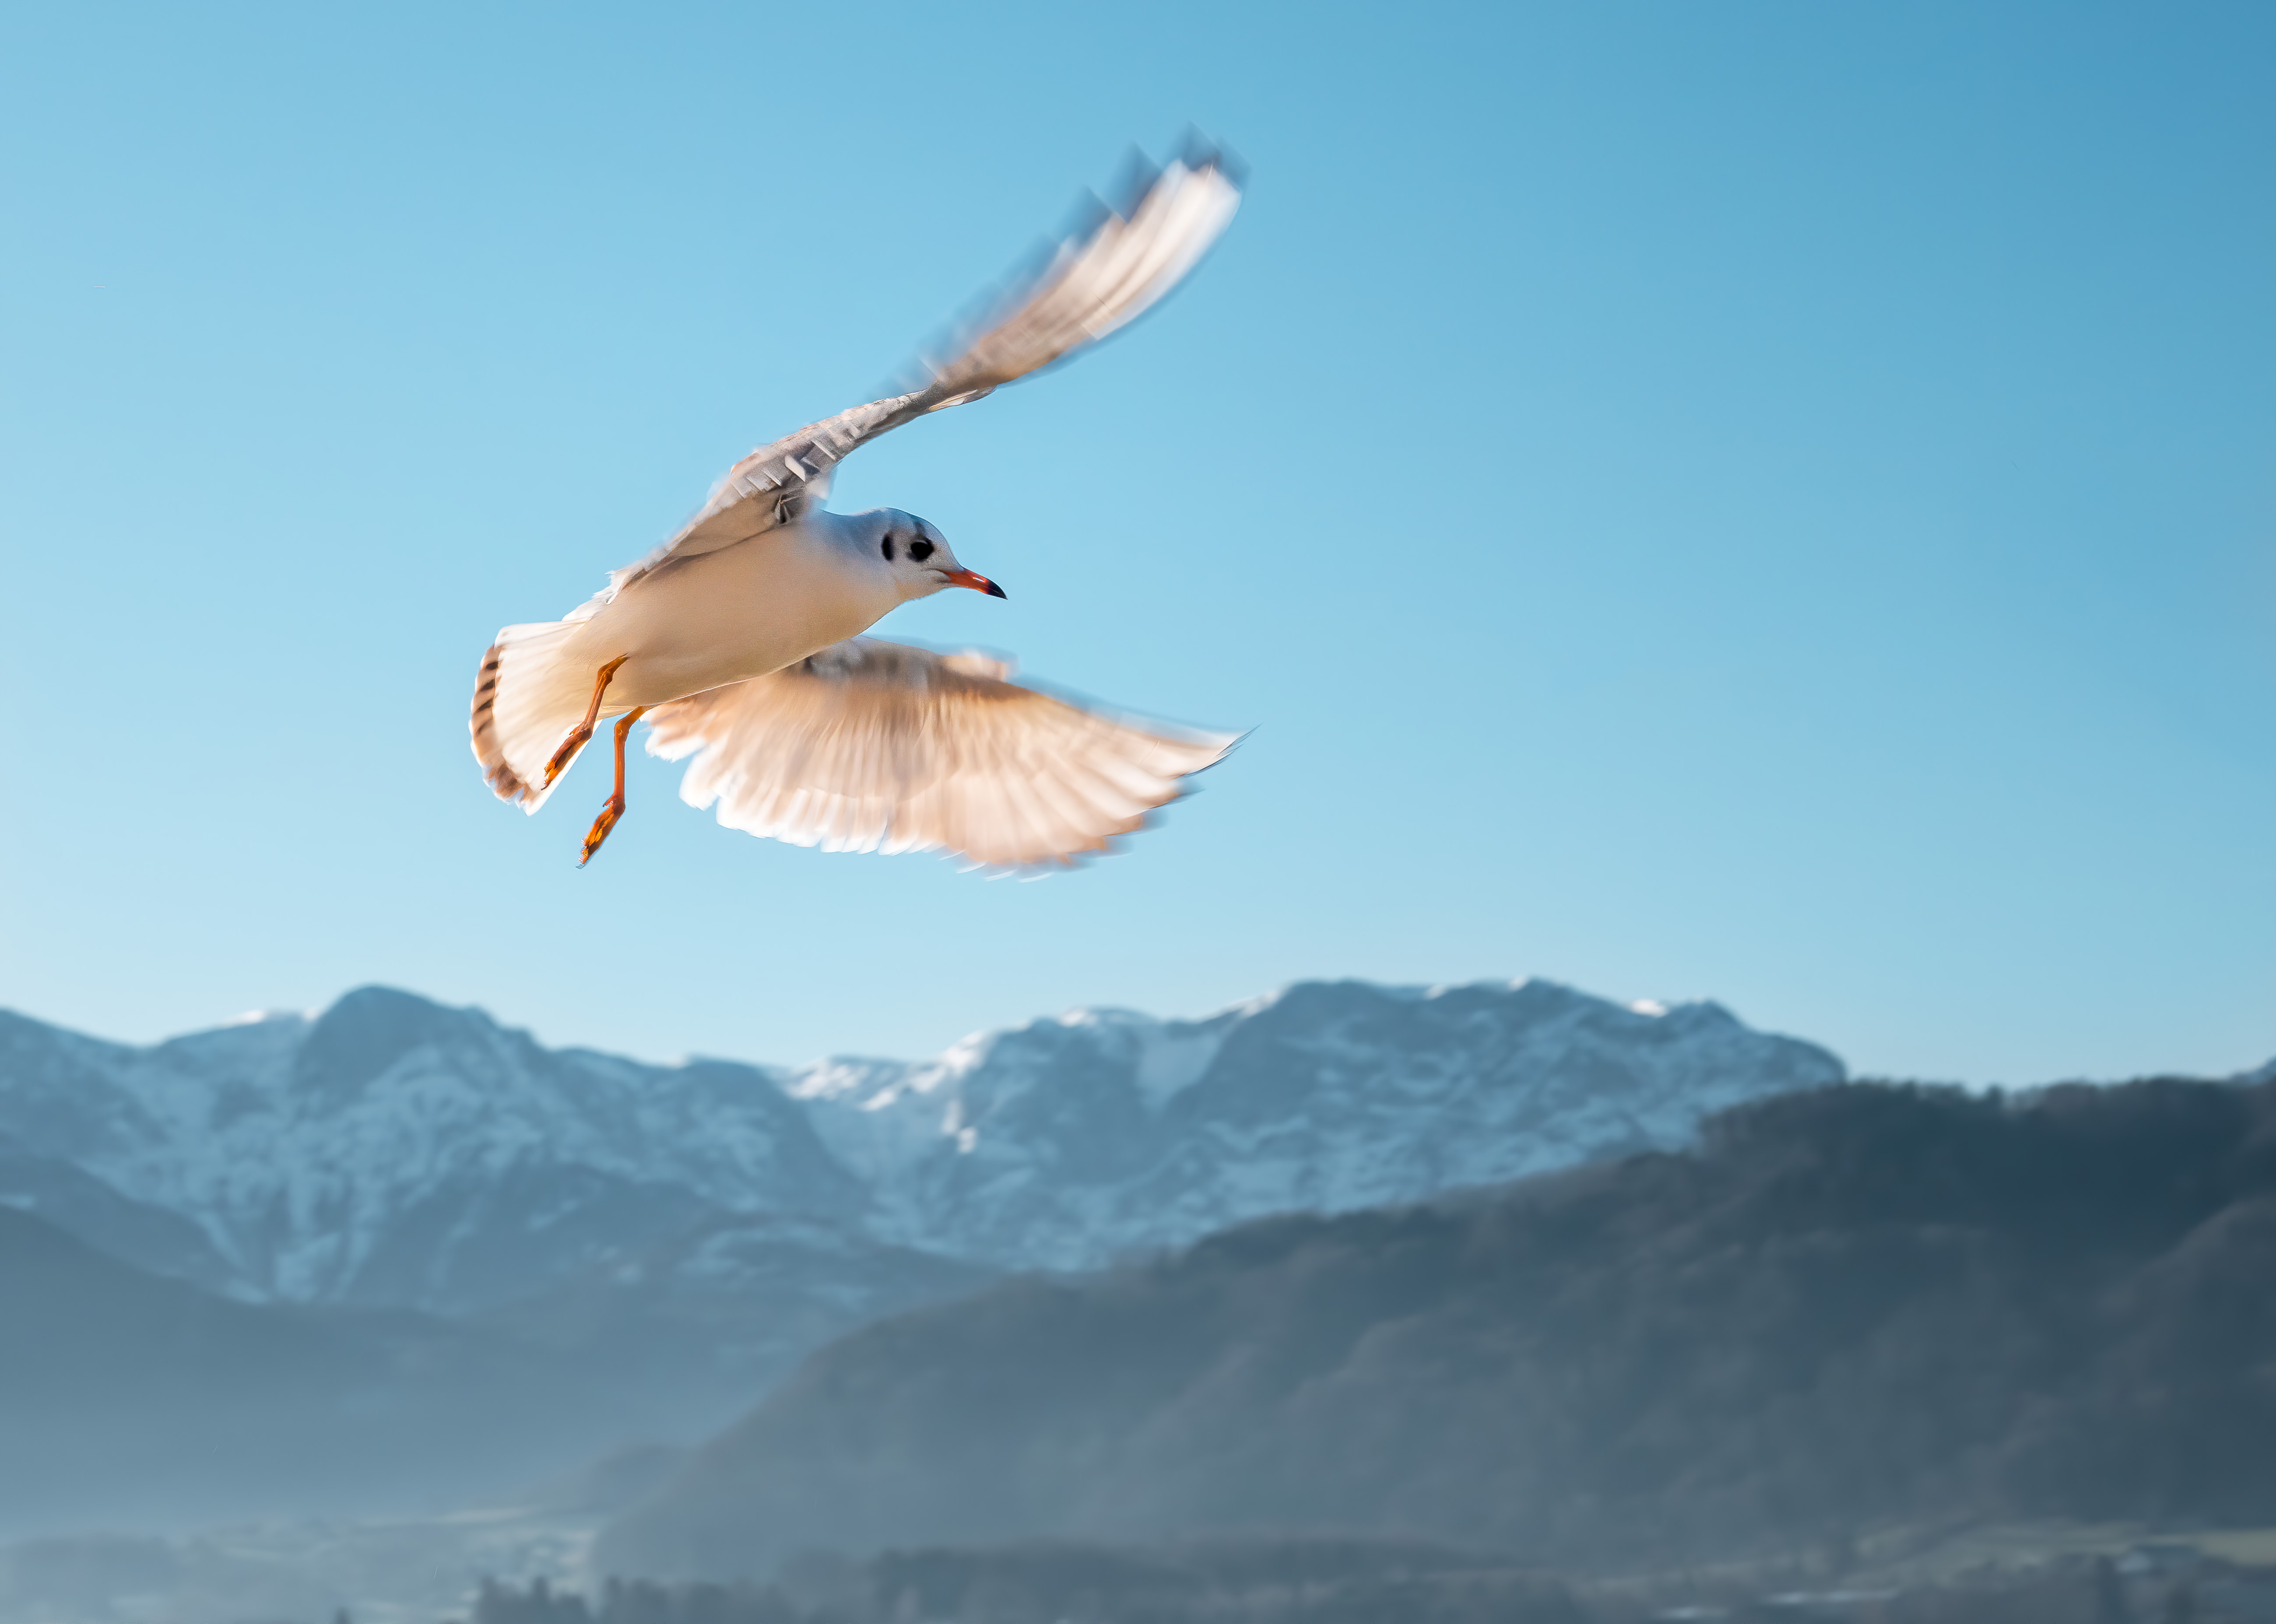 51793 download wallpaper Animals, Gull, Seagull, Bird, Flight, Sky, Mountains screensavers and pictures for free